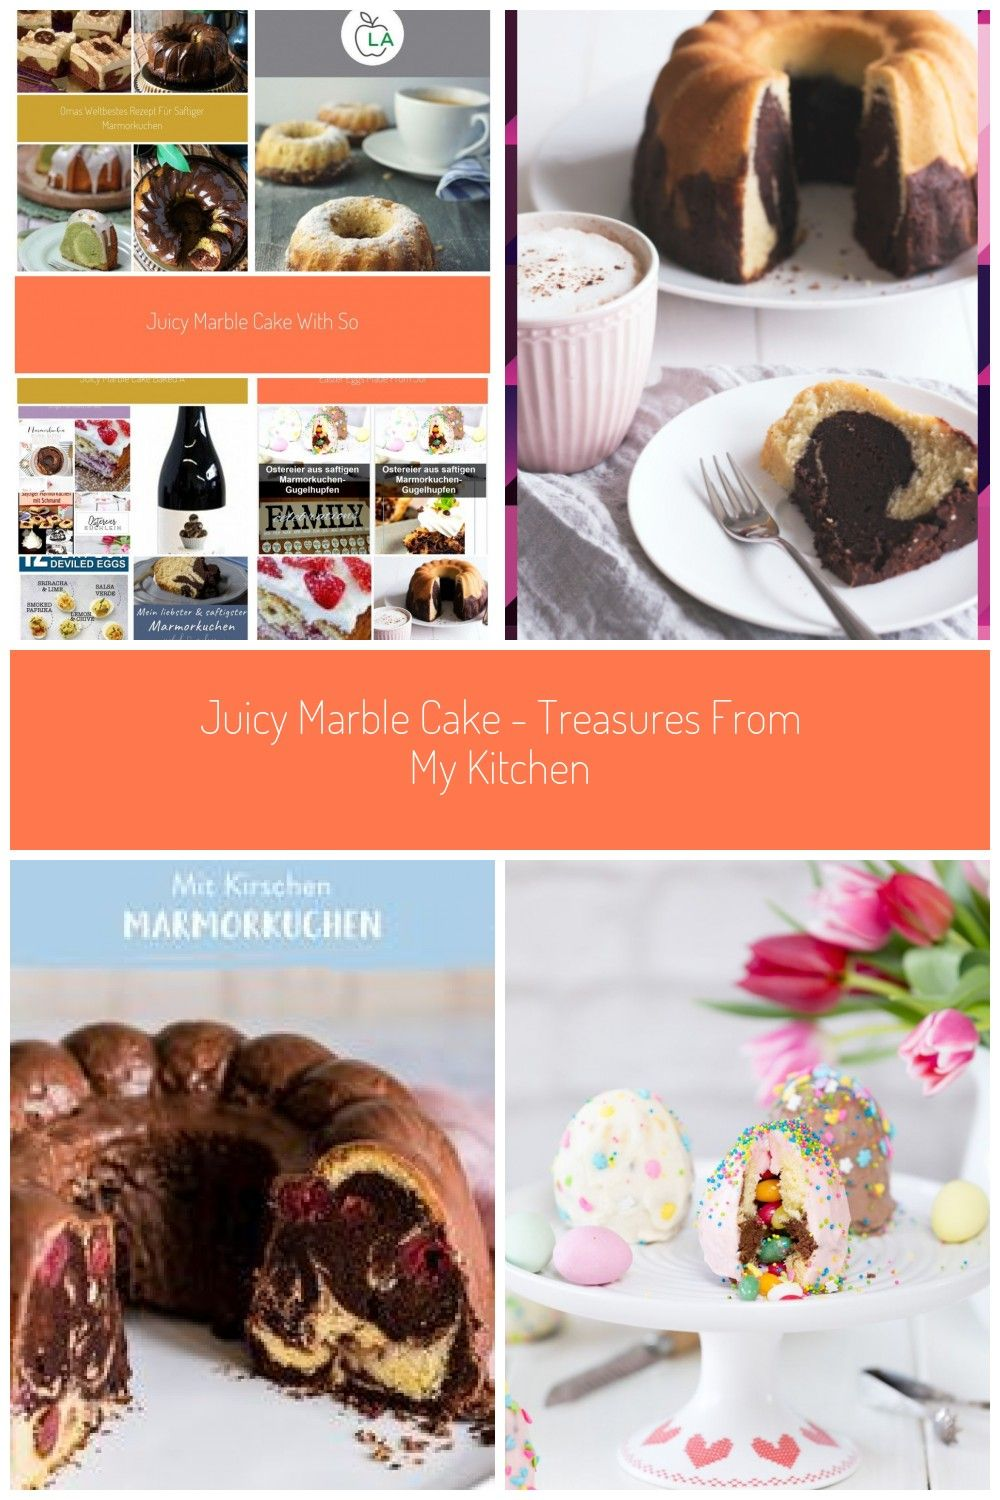 Juicy Marble Cake With Sour Cream Pudding Cake Cream Juicy Marble Pudding Sour Juicy Marble Cake With Sour Cream Juicy Marble Cake With Sour Cre In 2020 Kirschen Marmor